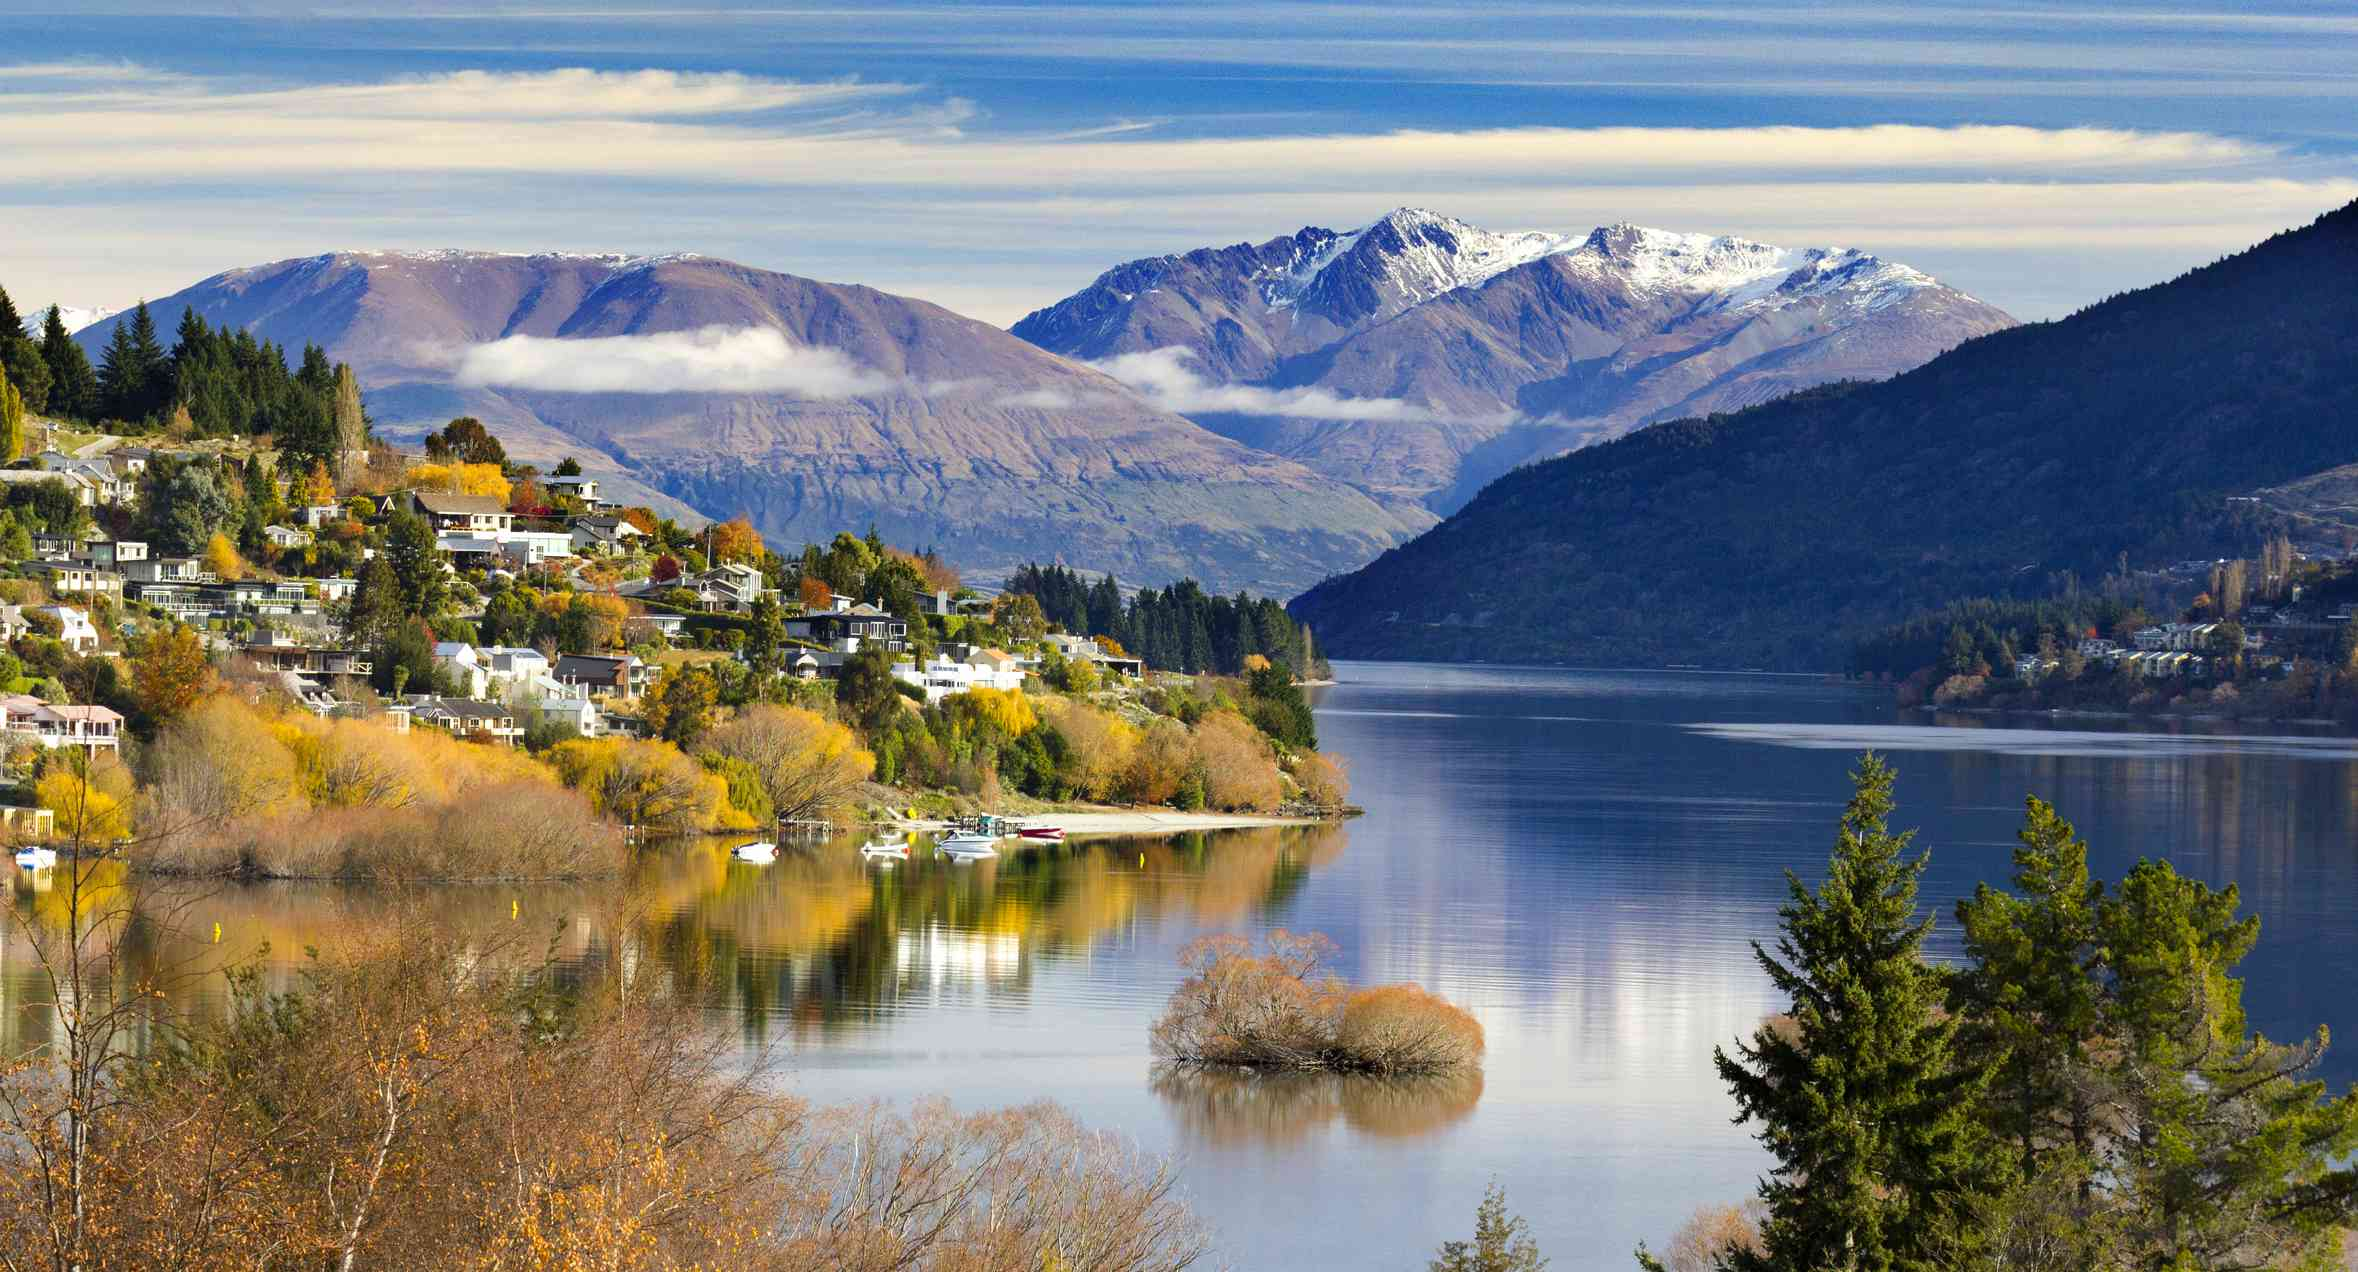 snow-capped mountains, lake and houses in Queenstown